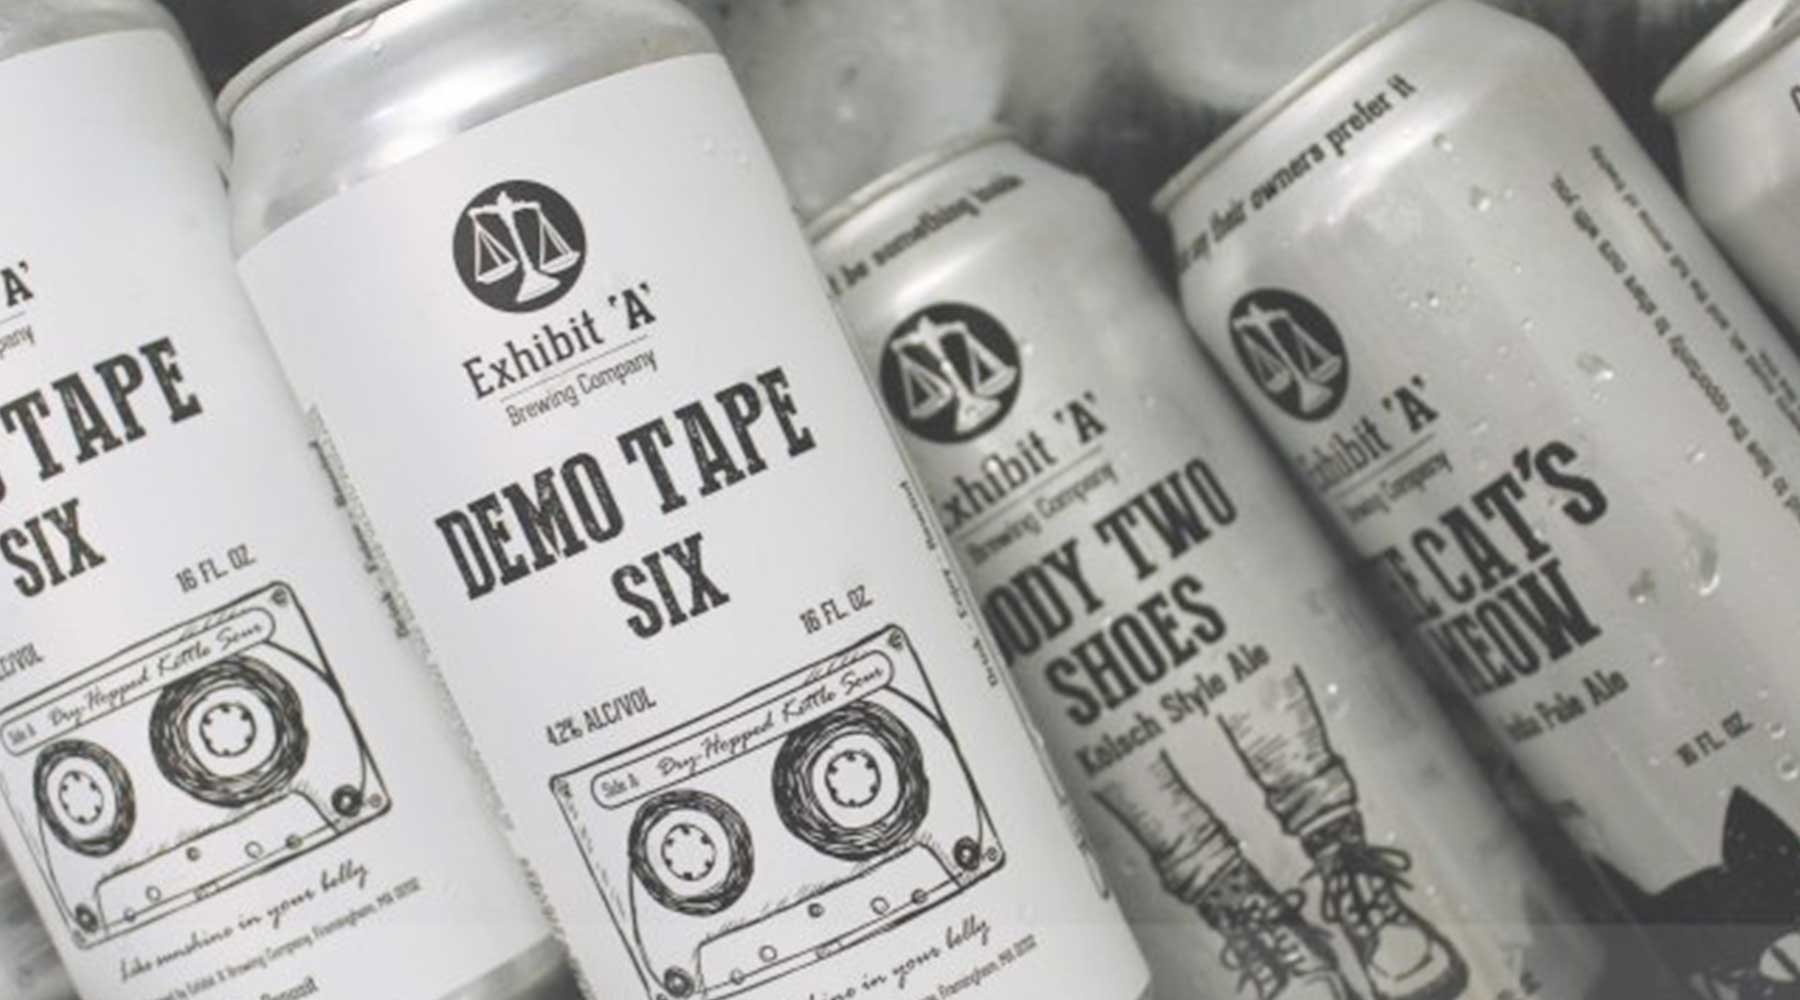 Exhibit 'A' Brewing Company | Just Wine